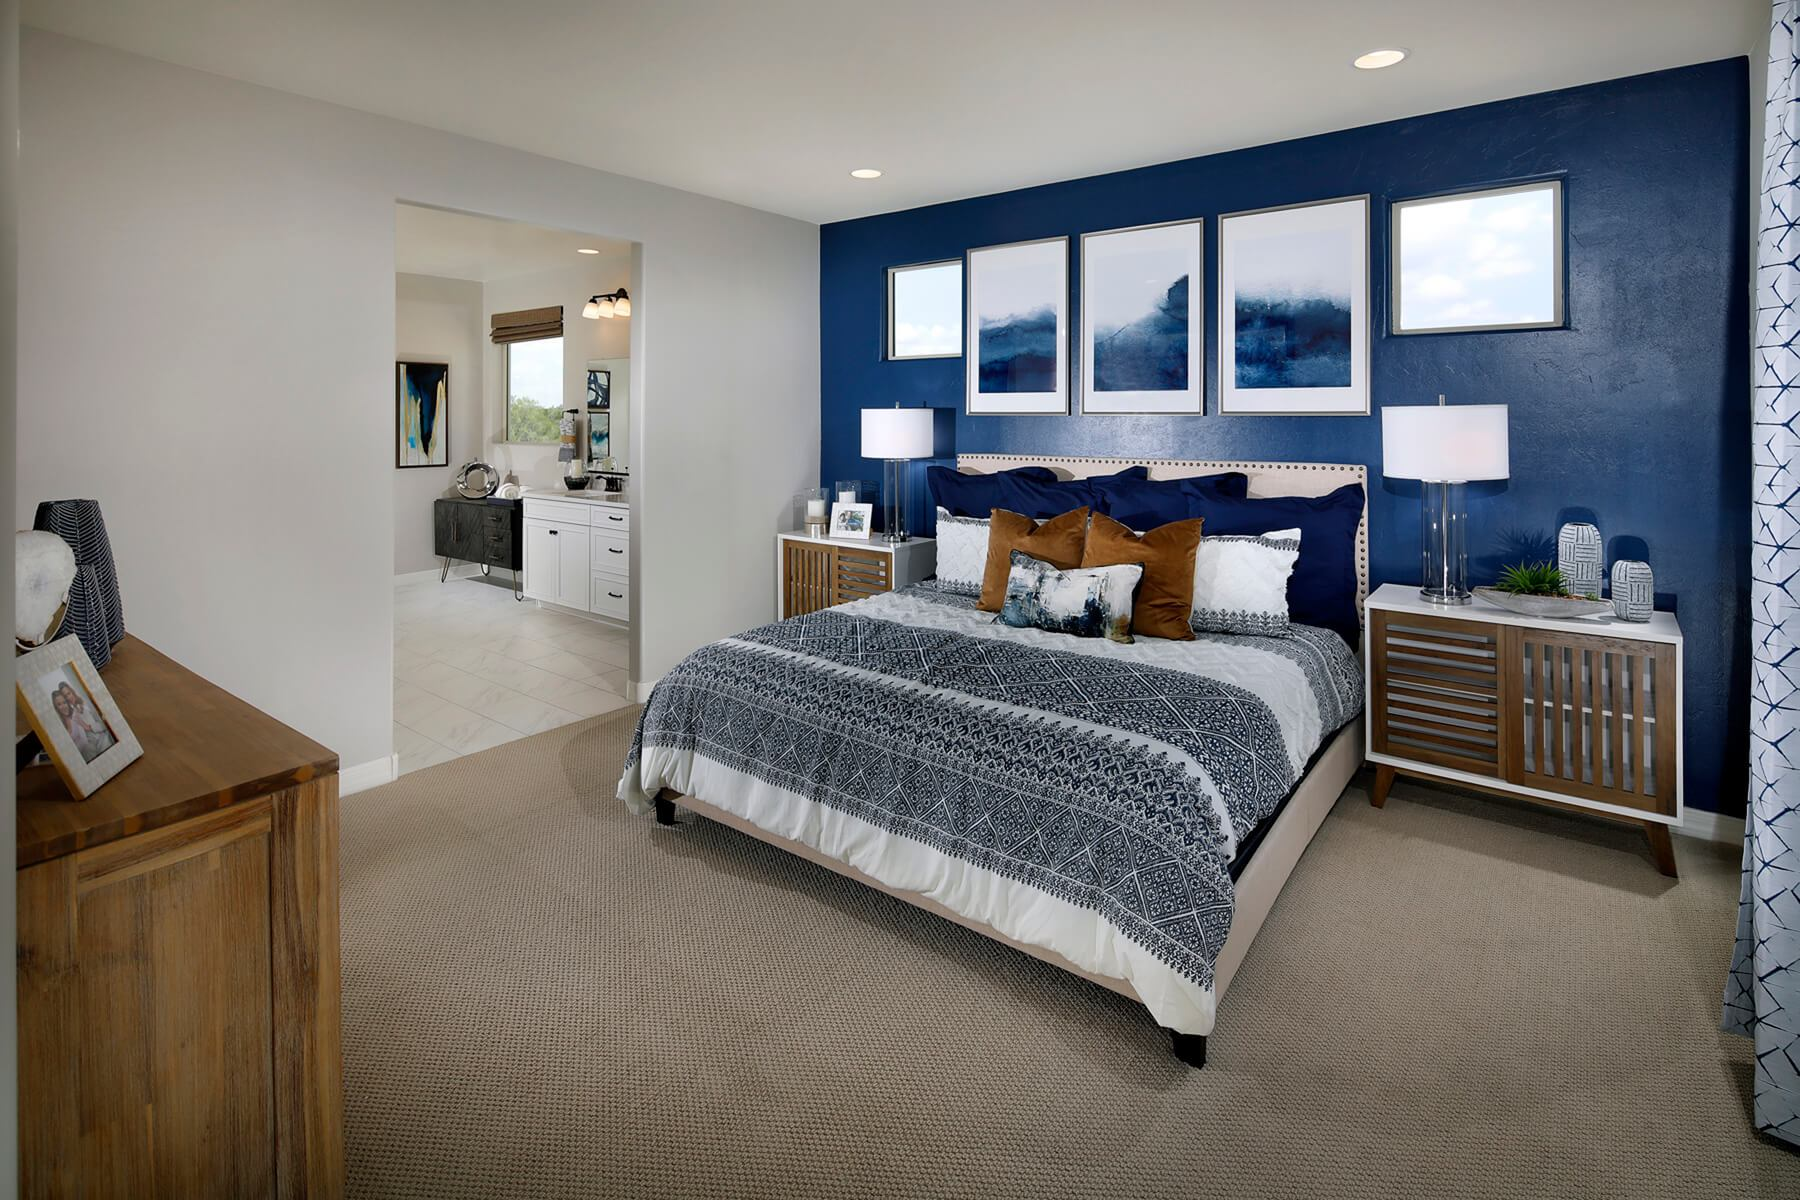 Bedroom featured in the Hawk By Meritage Homes in Tucson, AZ